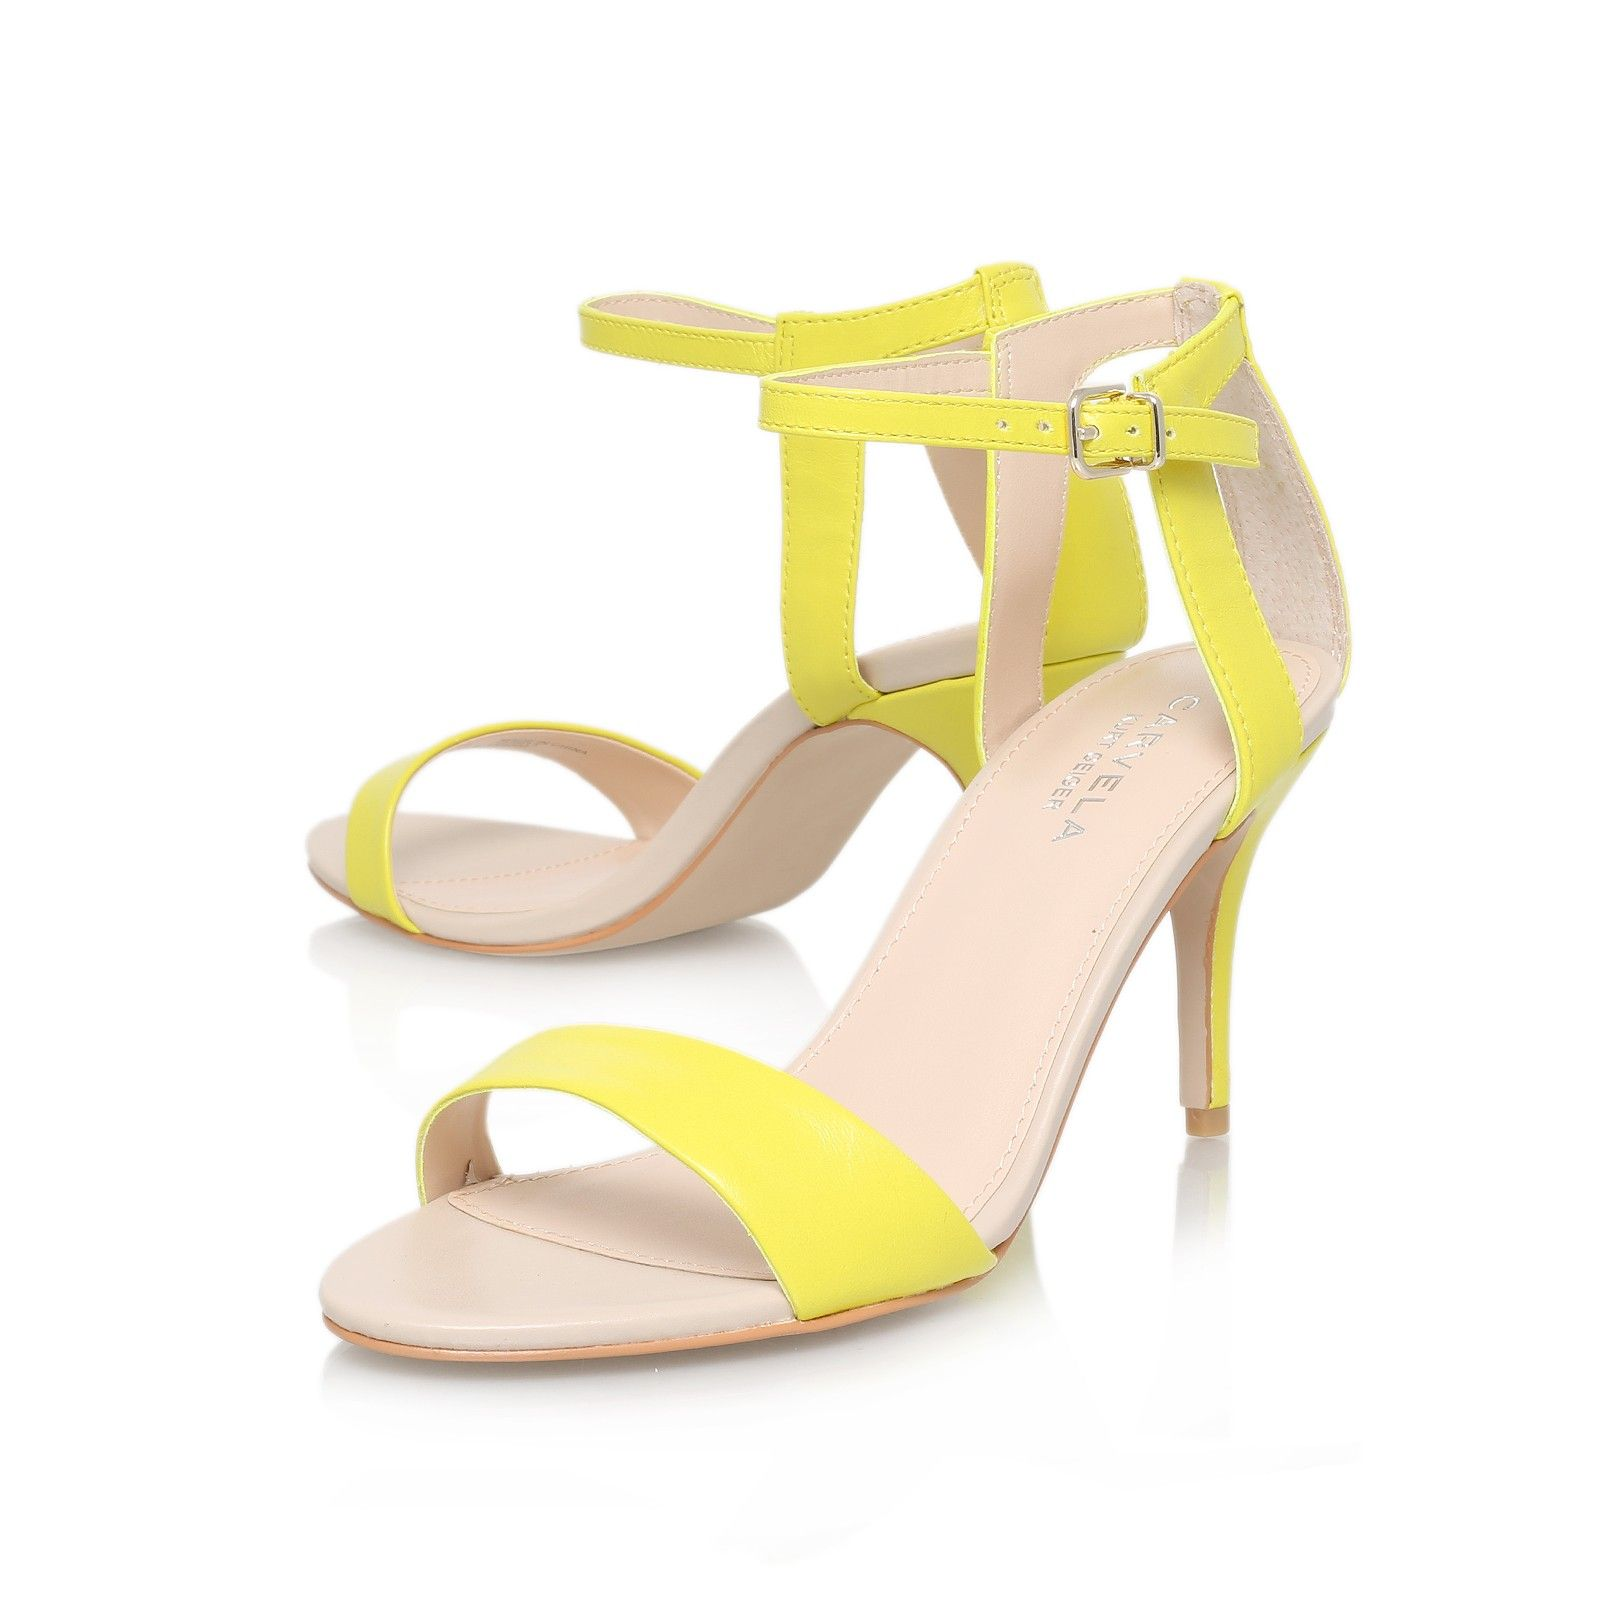 Carvela, Kurt geiger and Yellow shoes on Pinterest